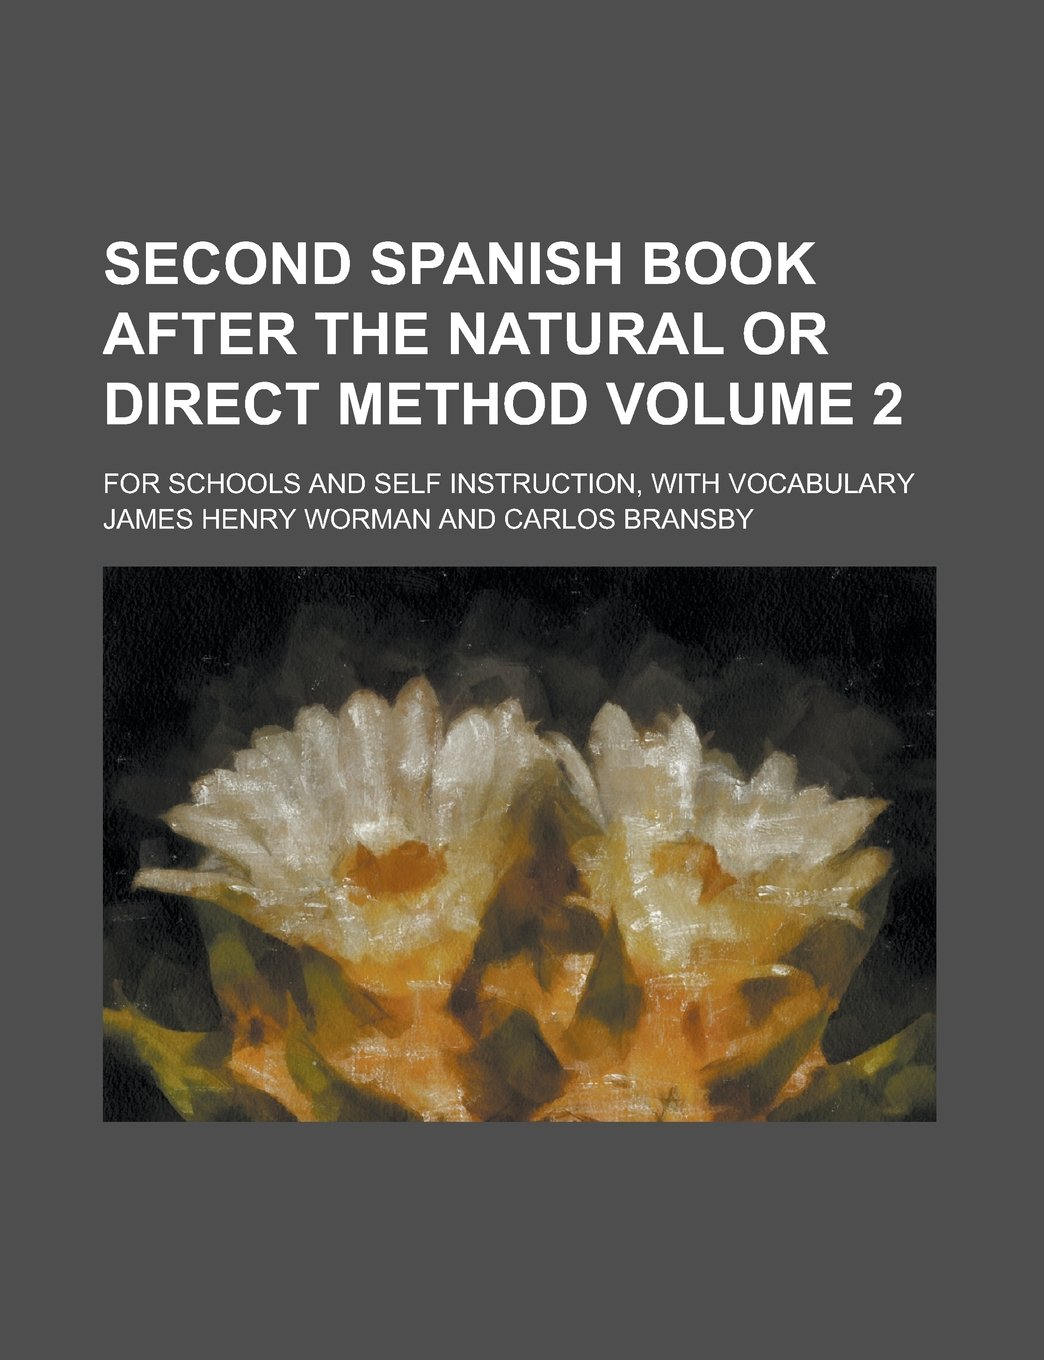 Second Spanish book after the natural or direct method; for schools and self instruction, with vocabulary Volume 2 Paperback – September 13, 2013